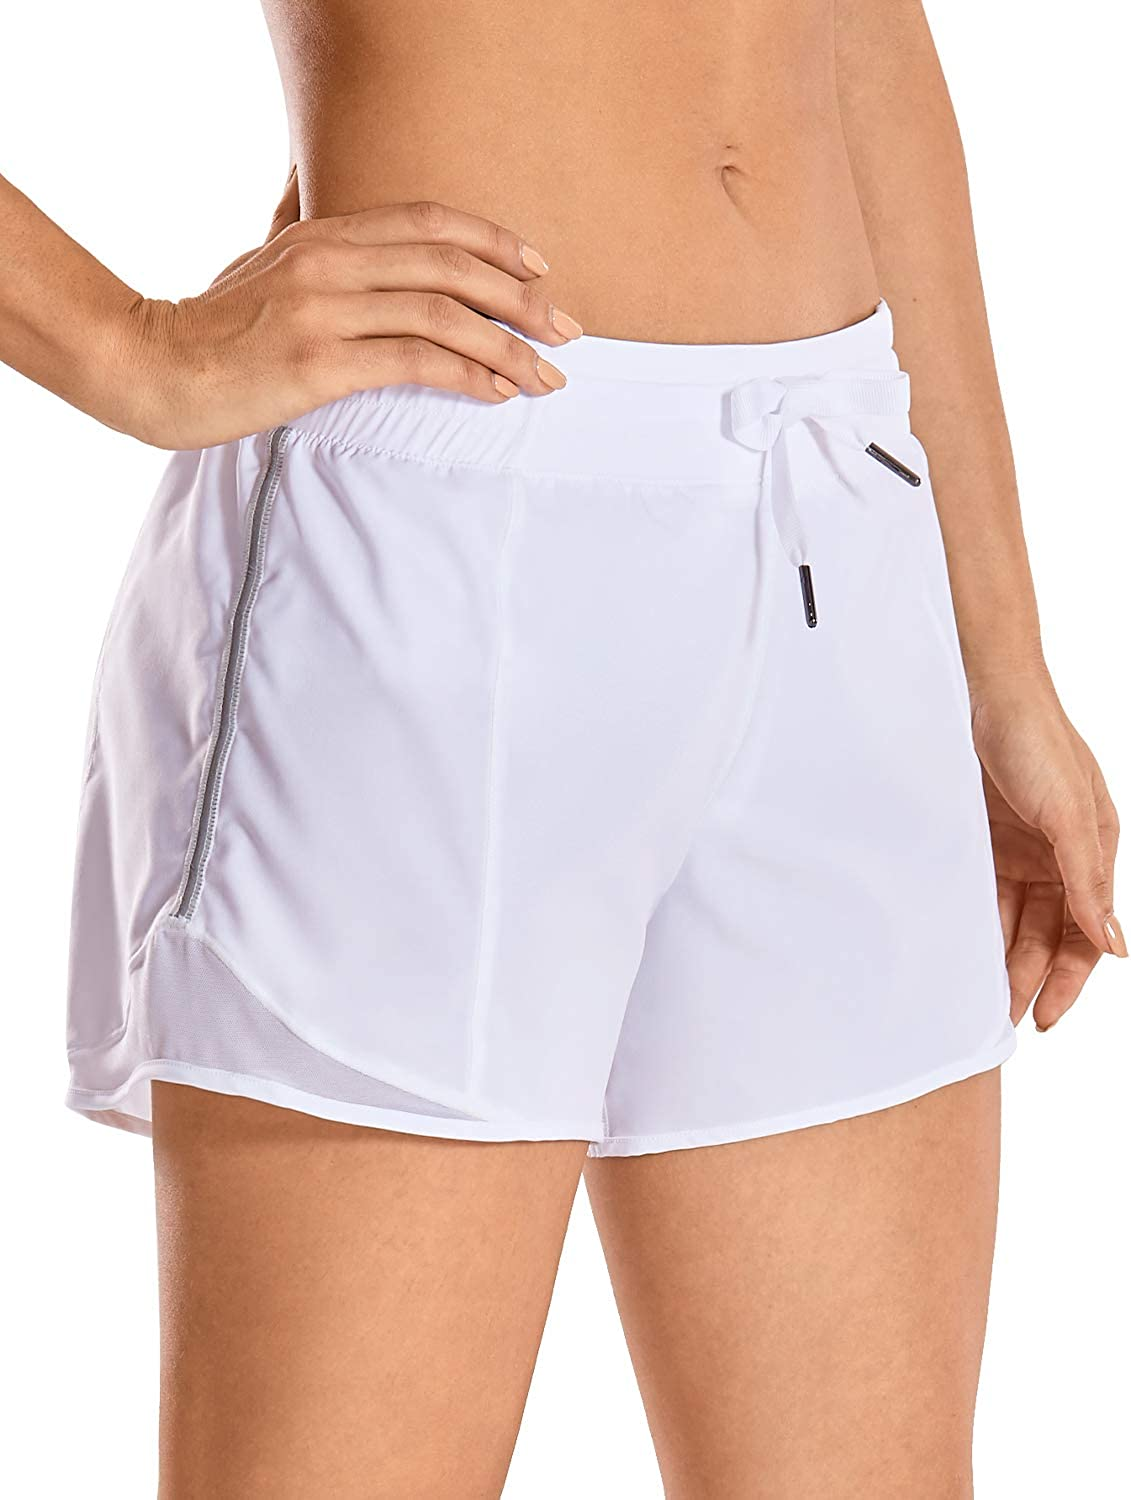 CRZ YOGA Quick-Dry Loose Running Shorts Women Sports Workout Shorts Gym Athletic Shorts with Pocket -4 Inches